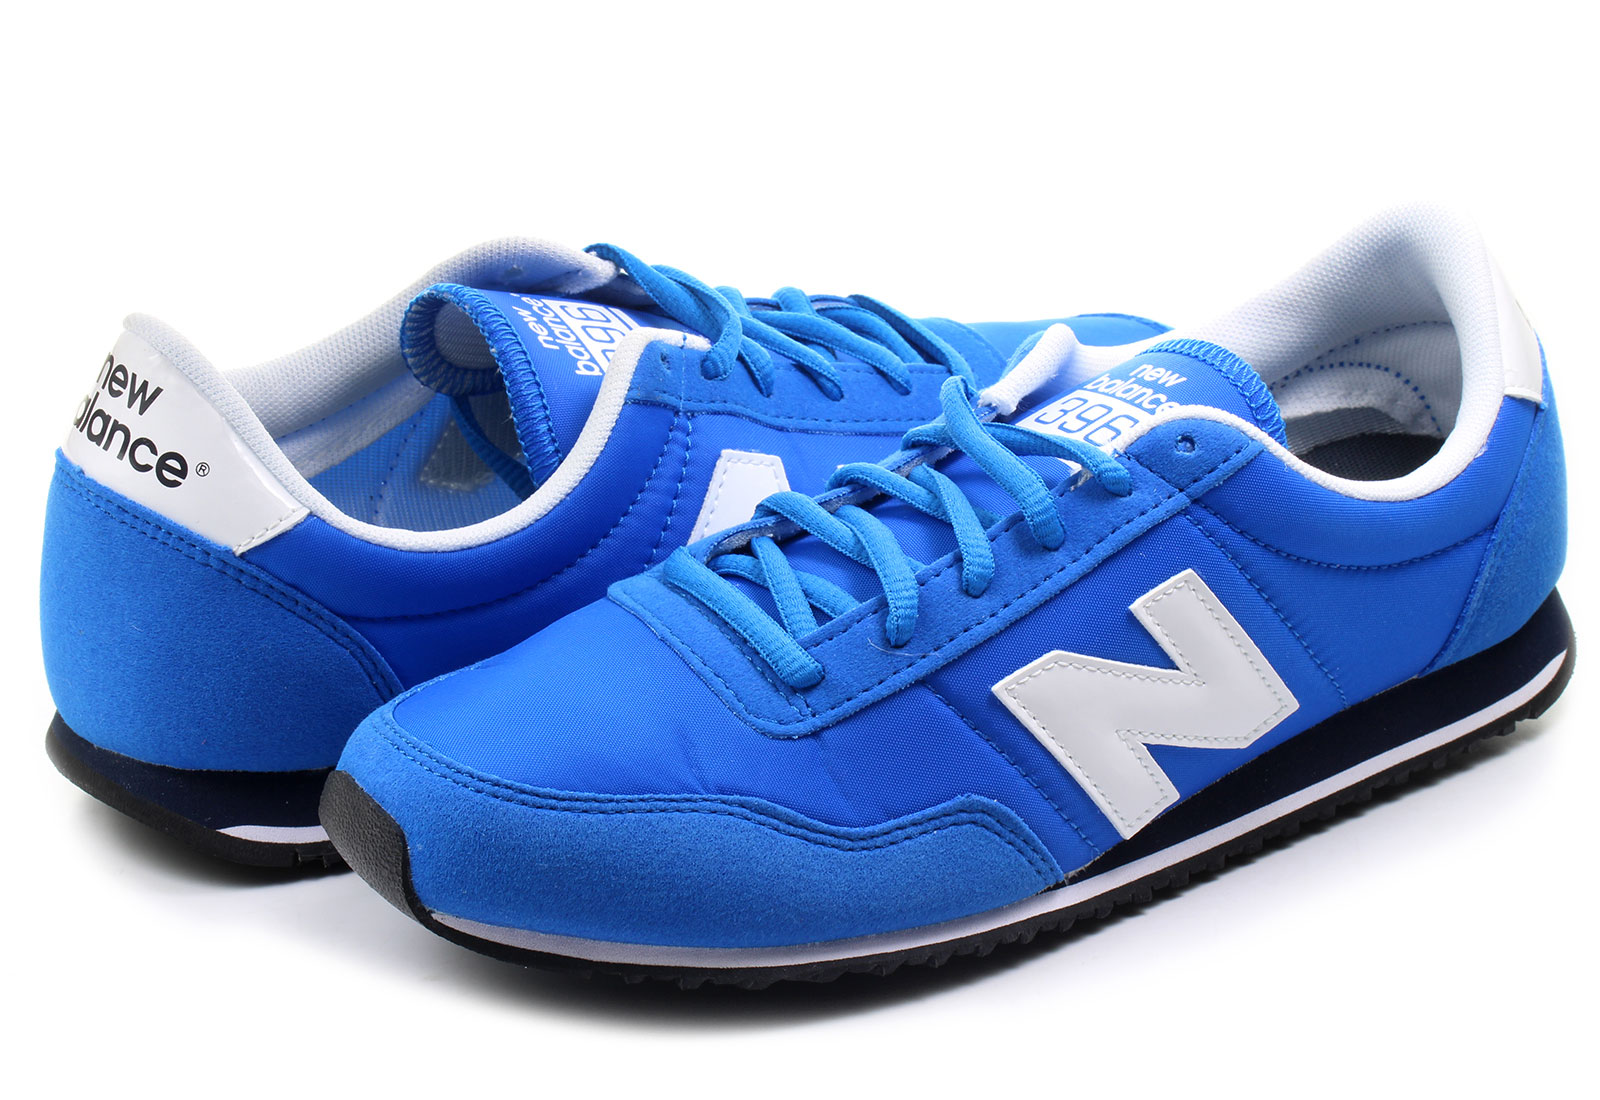 Exceder insalubre lavanda  Limited Time Deals·New Deals Everyday new balance u396, OFF 79%,Buy!